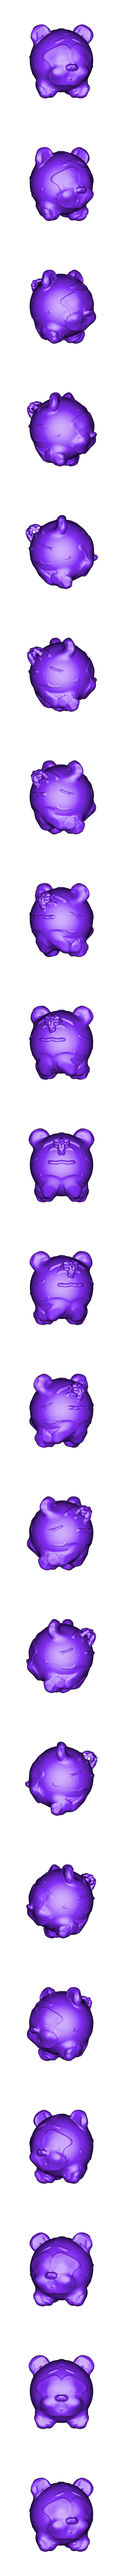 tigreatops.obj Download free OBJ file tigreatops (tiger boy series minitoys) • 3D printer template, Majin59